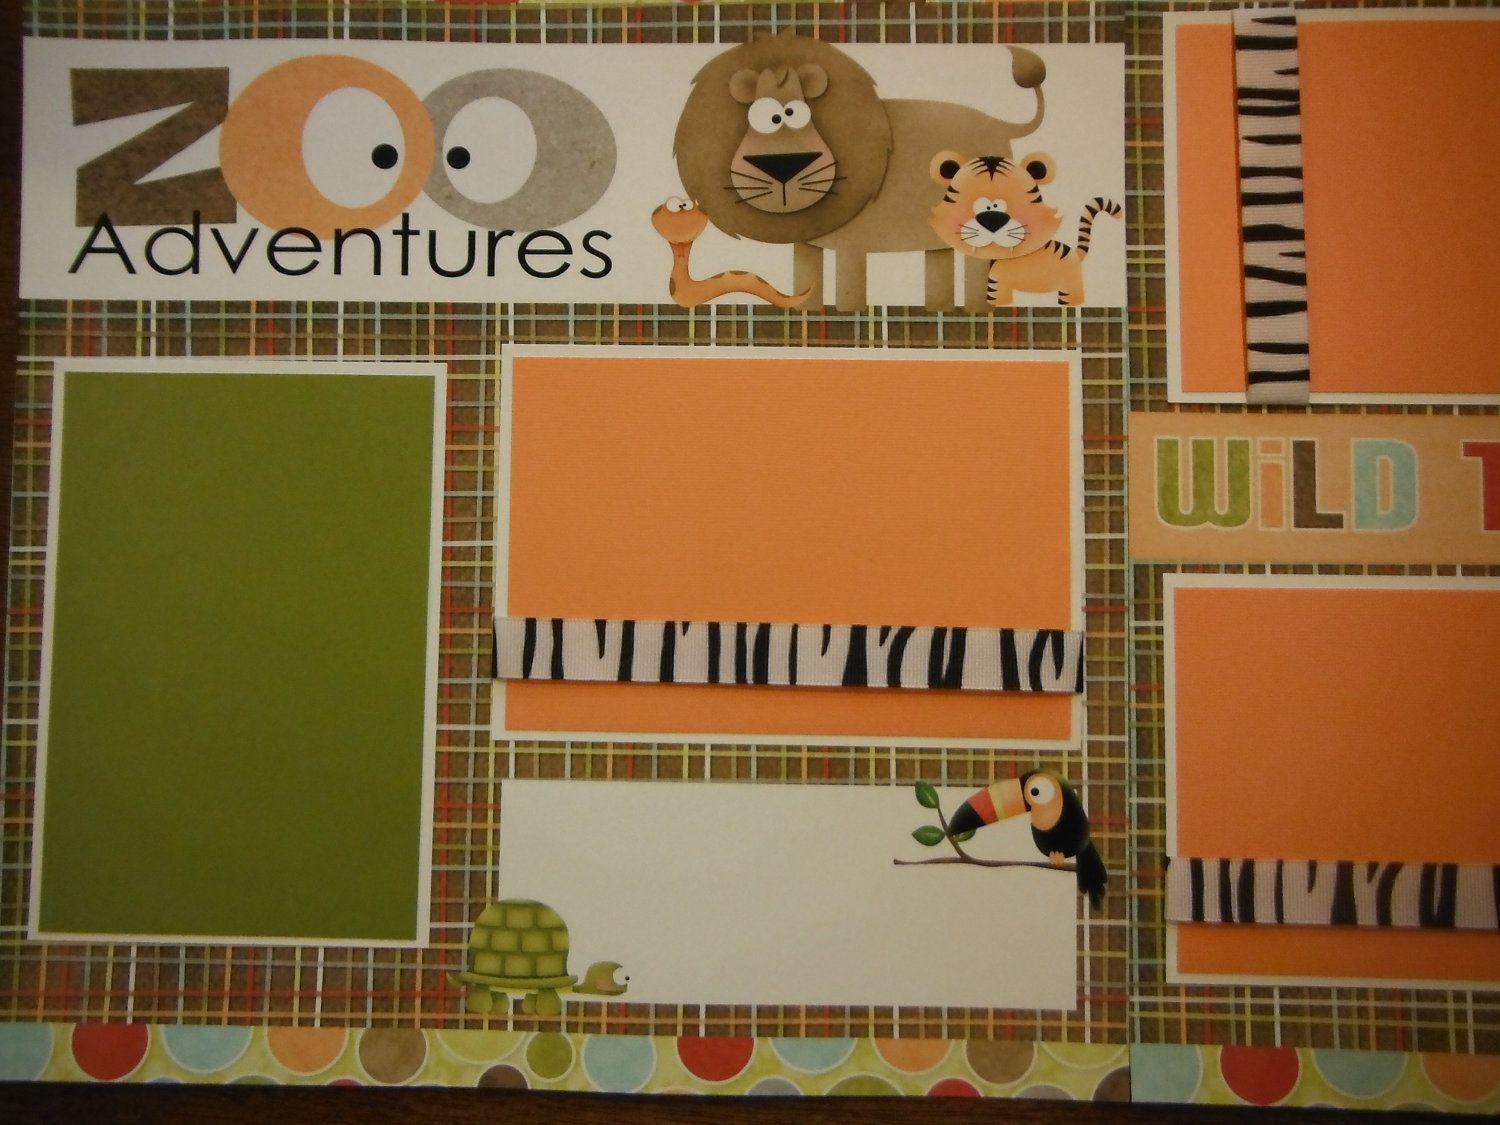 Scrapbook ideas zoo - Zoo Adventures Boys Girls Premade 12x12 Scrapbook Pages For Family 14 99 Via Etsy